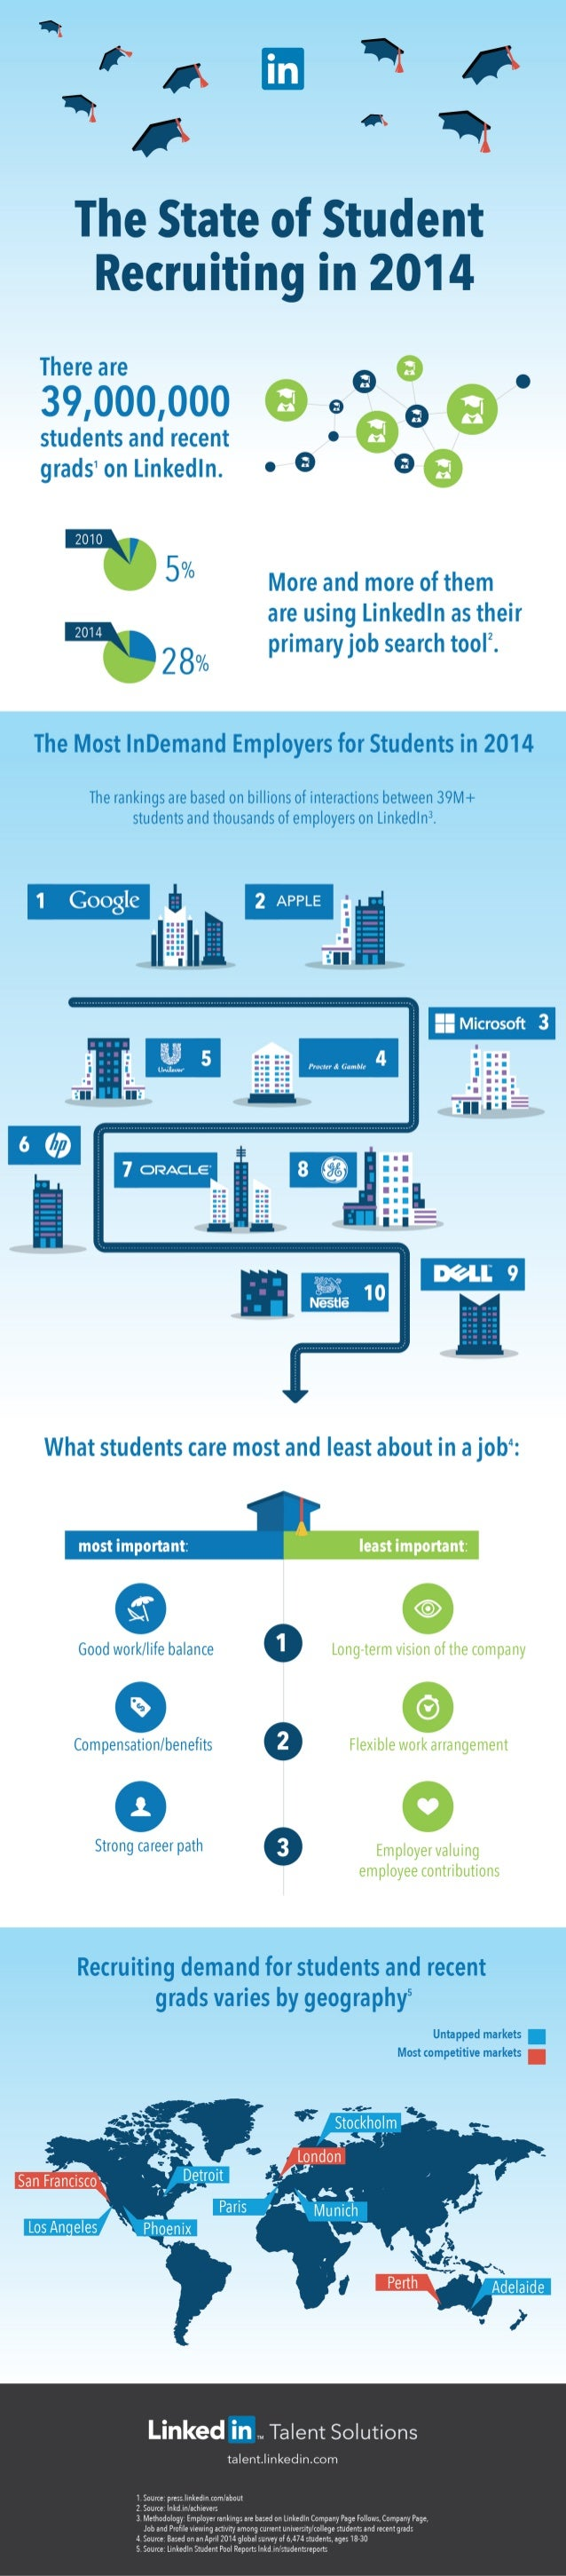 The State of Student Recruiting in 2014 | INFOGRAPHIC